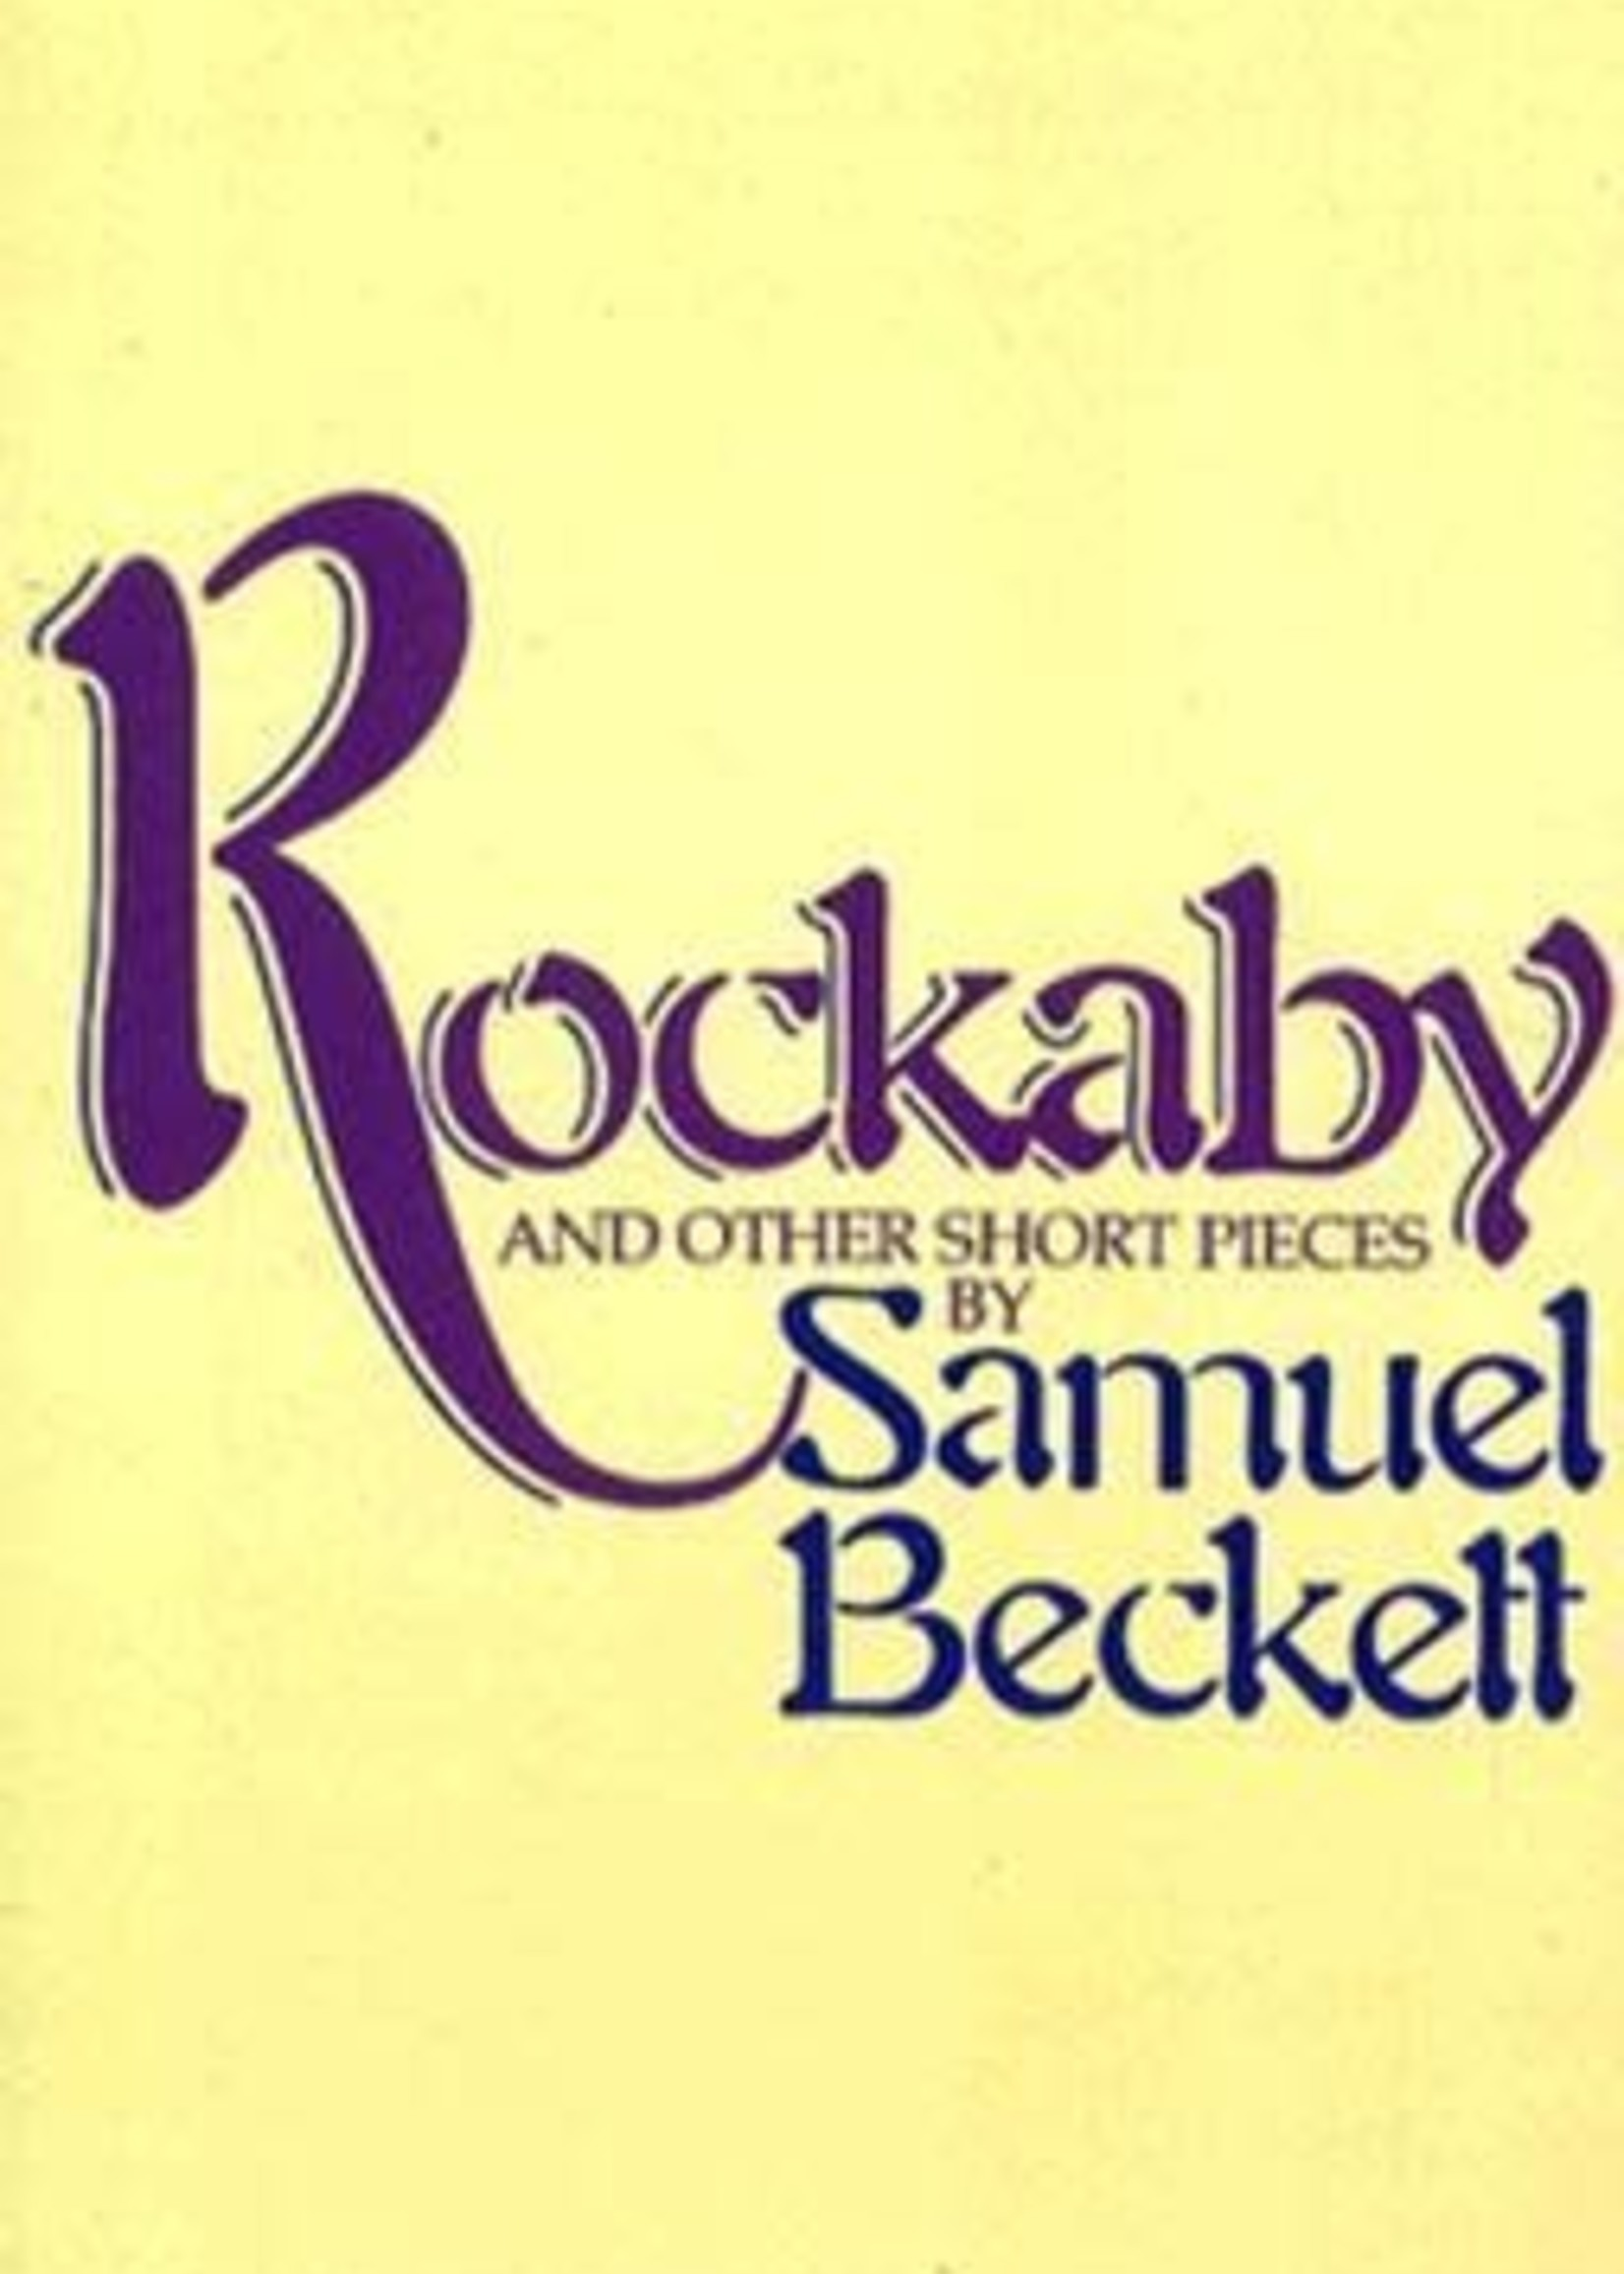 Rockaby and Other Short Pieces by Samuel Beckett